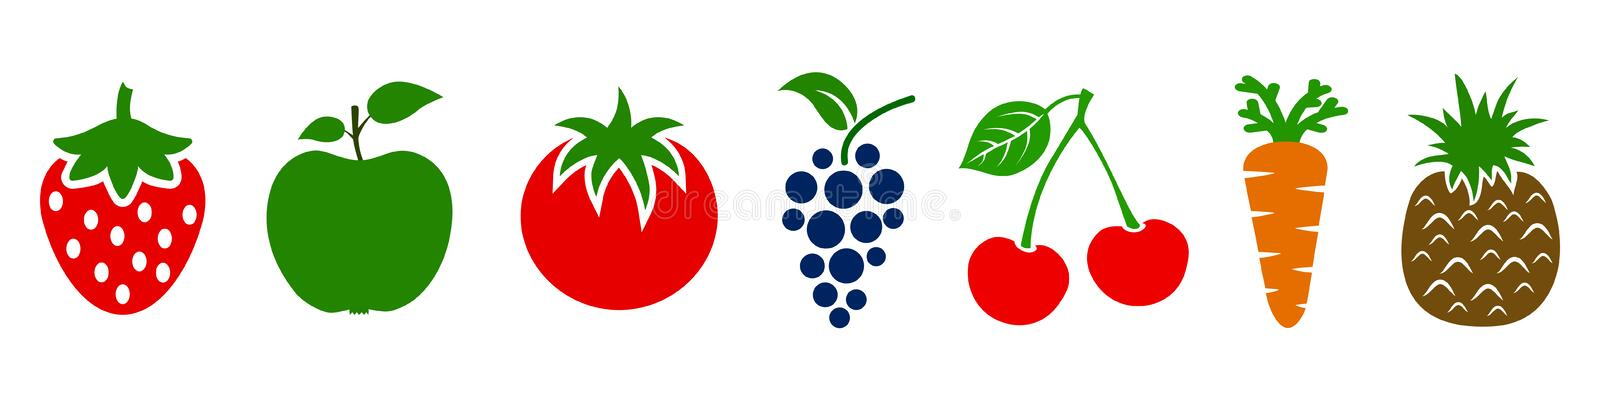 Set of fruits and vegetables icons. Variety products, healthy food collection of strawberry, apple, pineapple, cherry, grape vector illustration